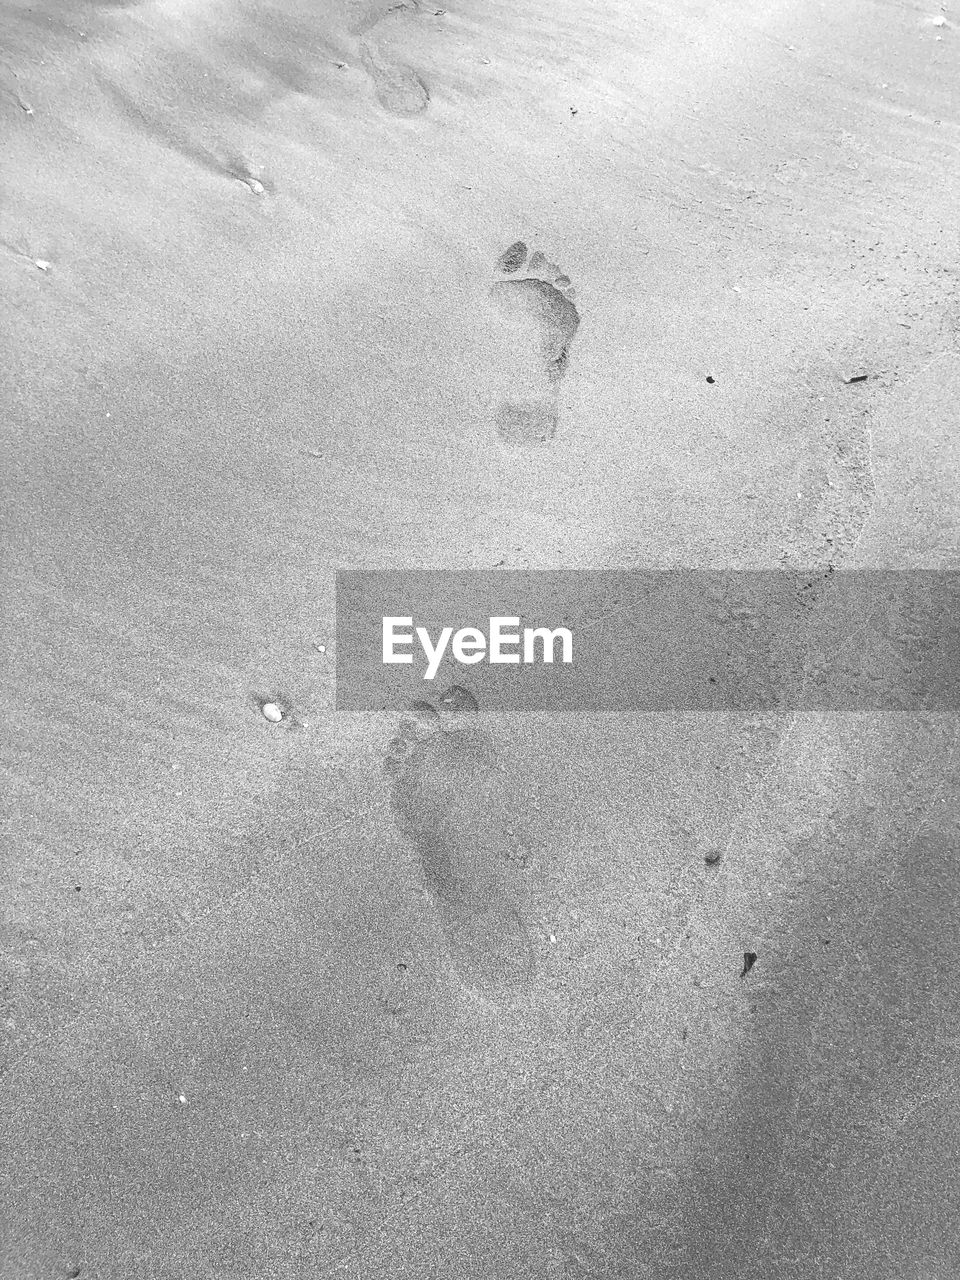 high angle view, footprint, paw print, day, sand, outdoors, nature, full frame, no people, beach, track - imprint